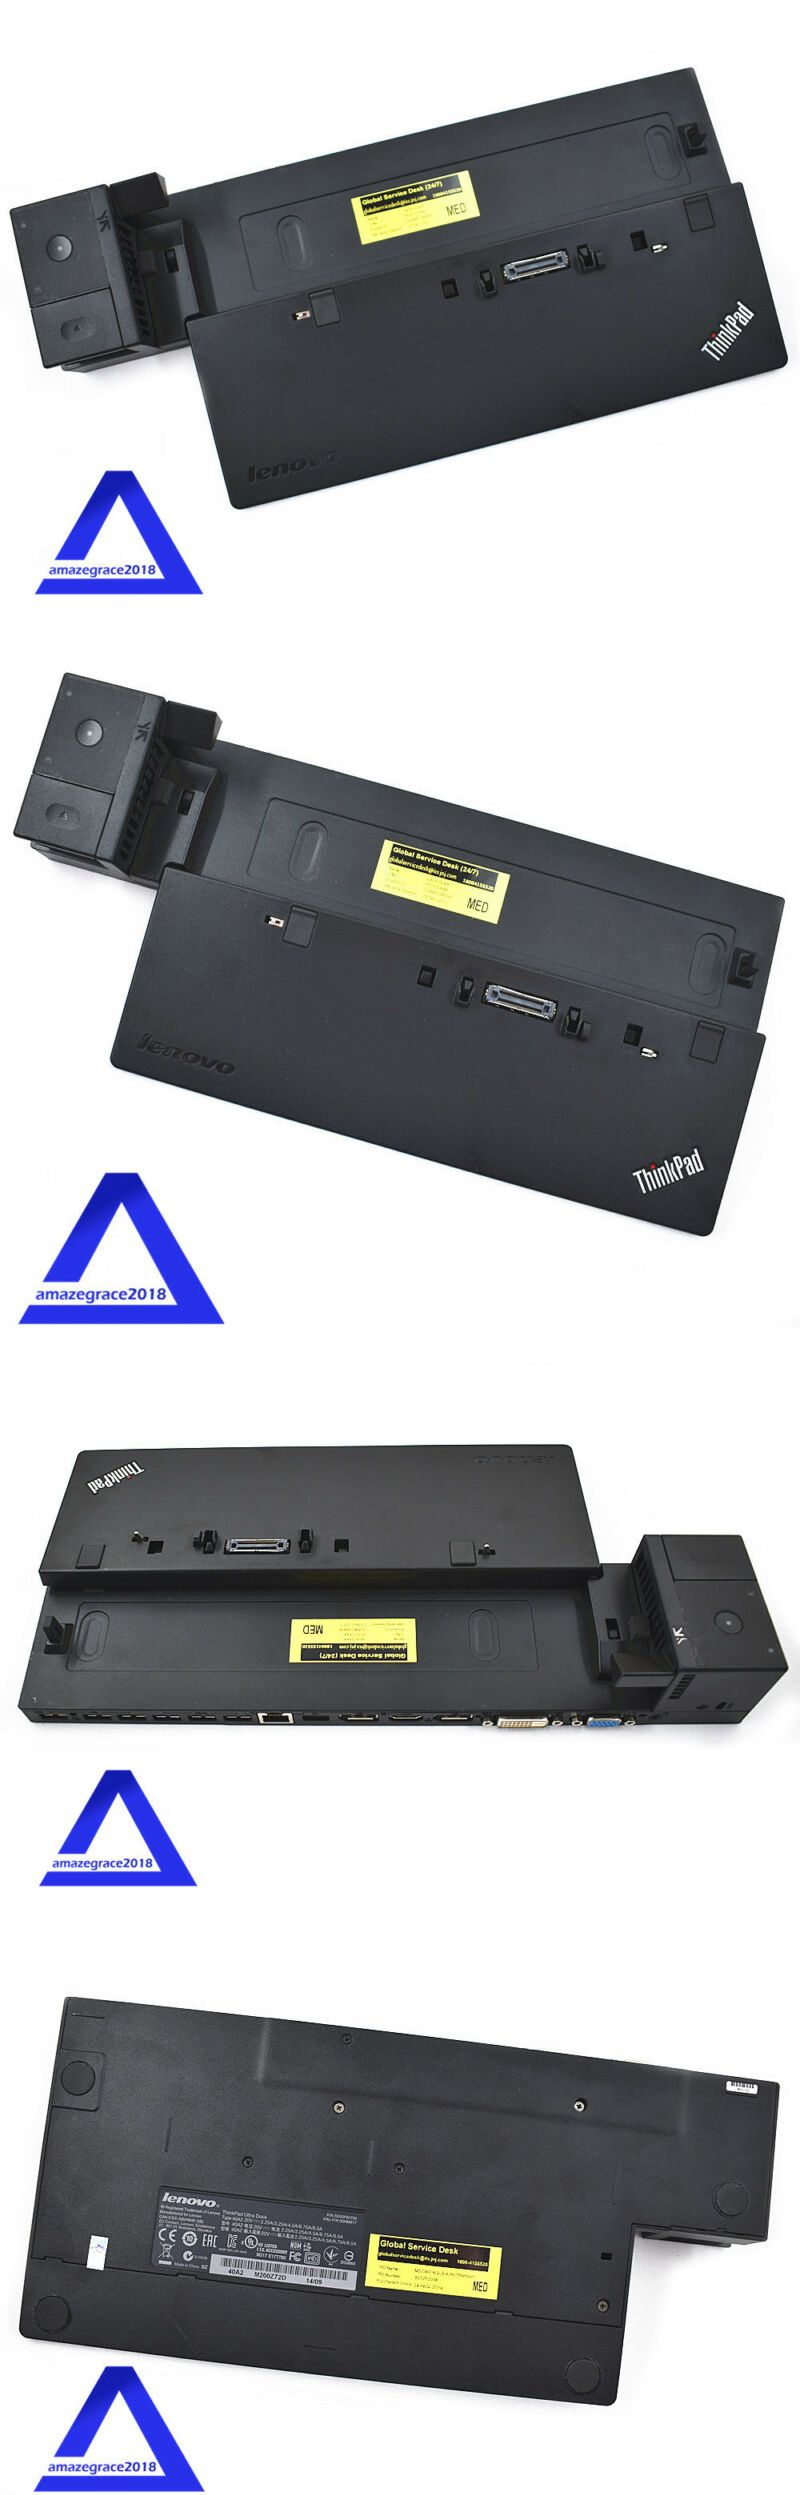 Laptop Docking Stations 3709: Lenovo Thinkpad Ultra Dock